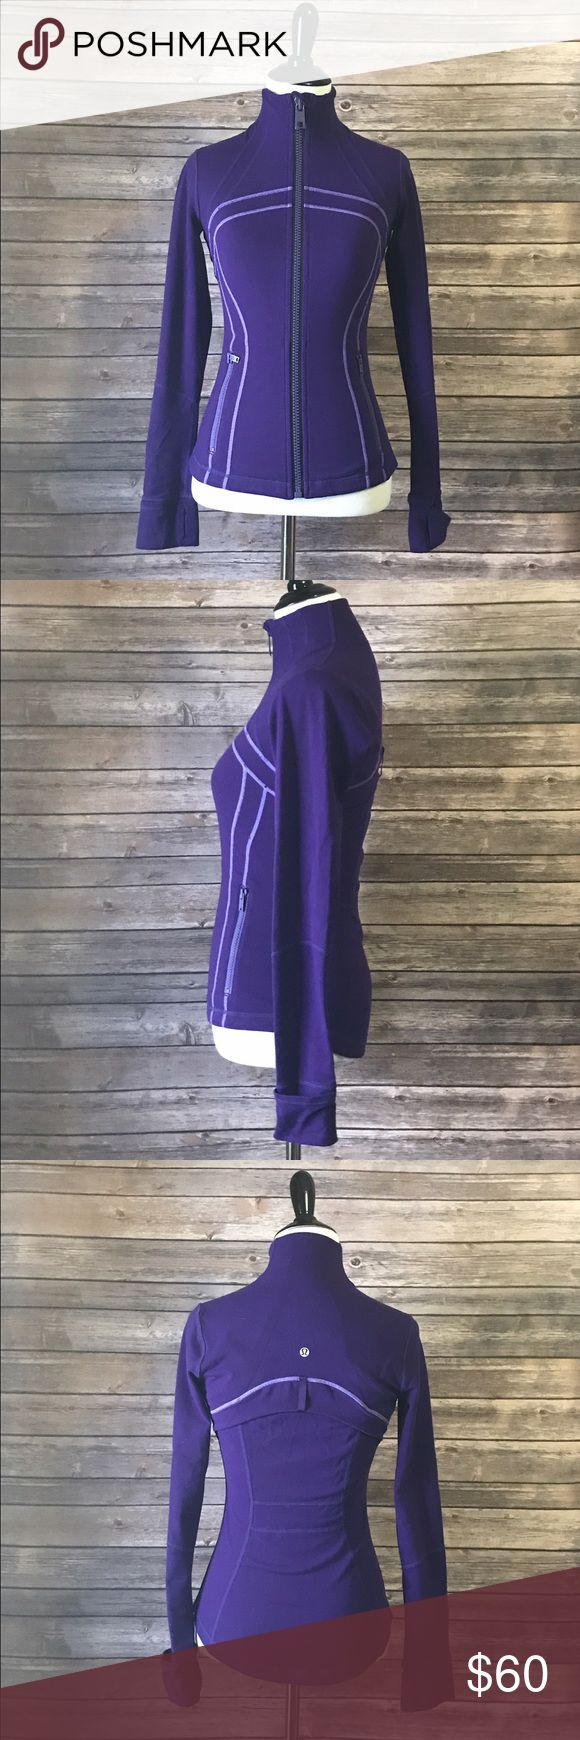 Lululemon Athletica purple define jacket sweater 4 Gently used Lululemon jacket  Some pilling here and there throughout the jacket but not serious. Great condition.  Zippers have discoloring. **Shown in photos.  Size 4    ❌I do NOT trade ❌ 🛍10% off 2+ item bundles 📸Instagram @Yami.Boutique (Exclusive Pop Up Discount codes ONLY for my followers!) lululemon athletica Jackets & Coats